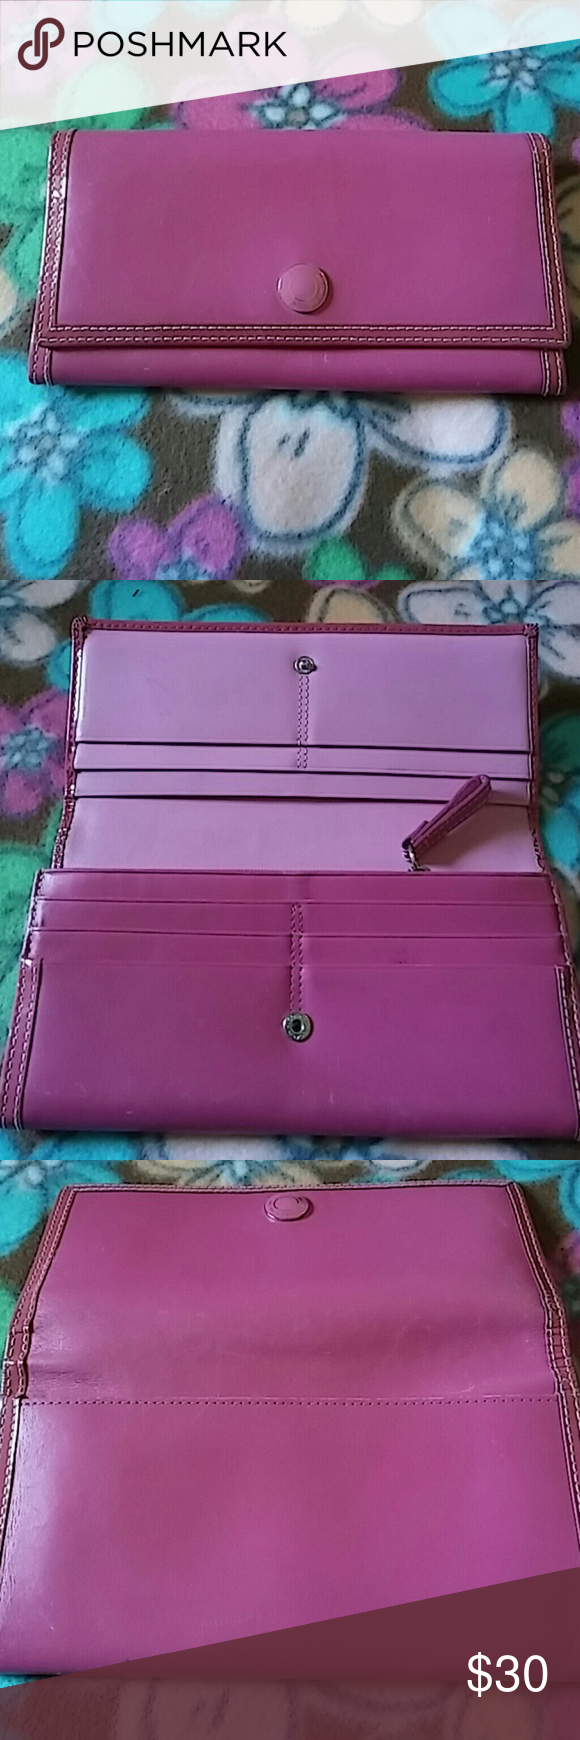 Pretty in Pink Coach Wallet 12 card holders, coin section and 4 bill sections..Has been used, some minor wear. Still in good shape, pretty pink interior..no stain, or holes... Coach Bags Wallets